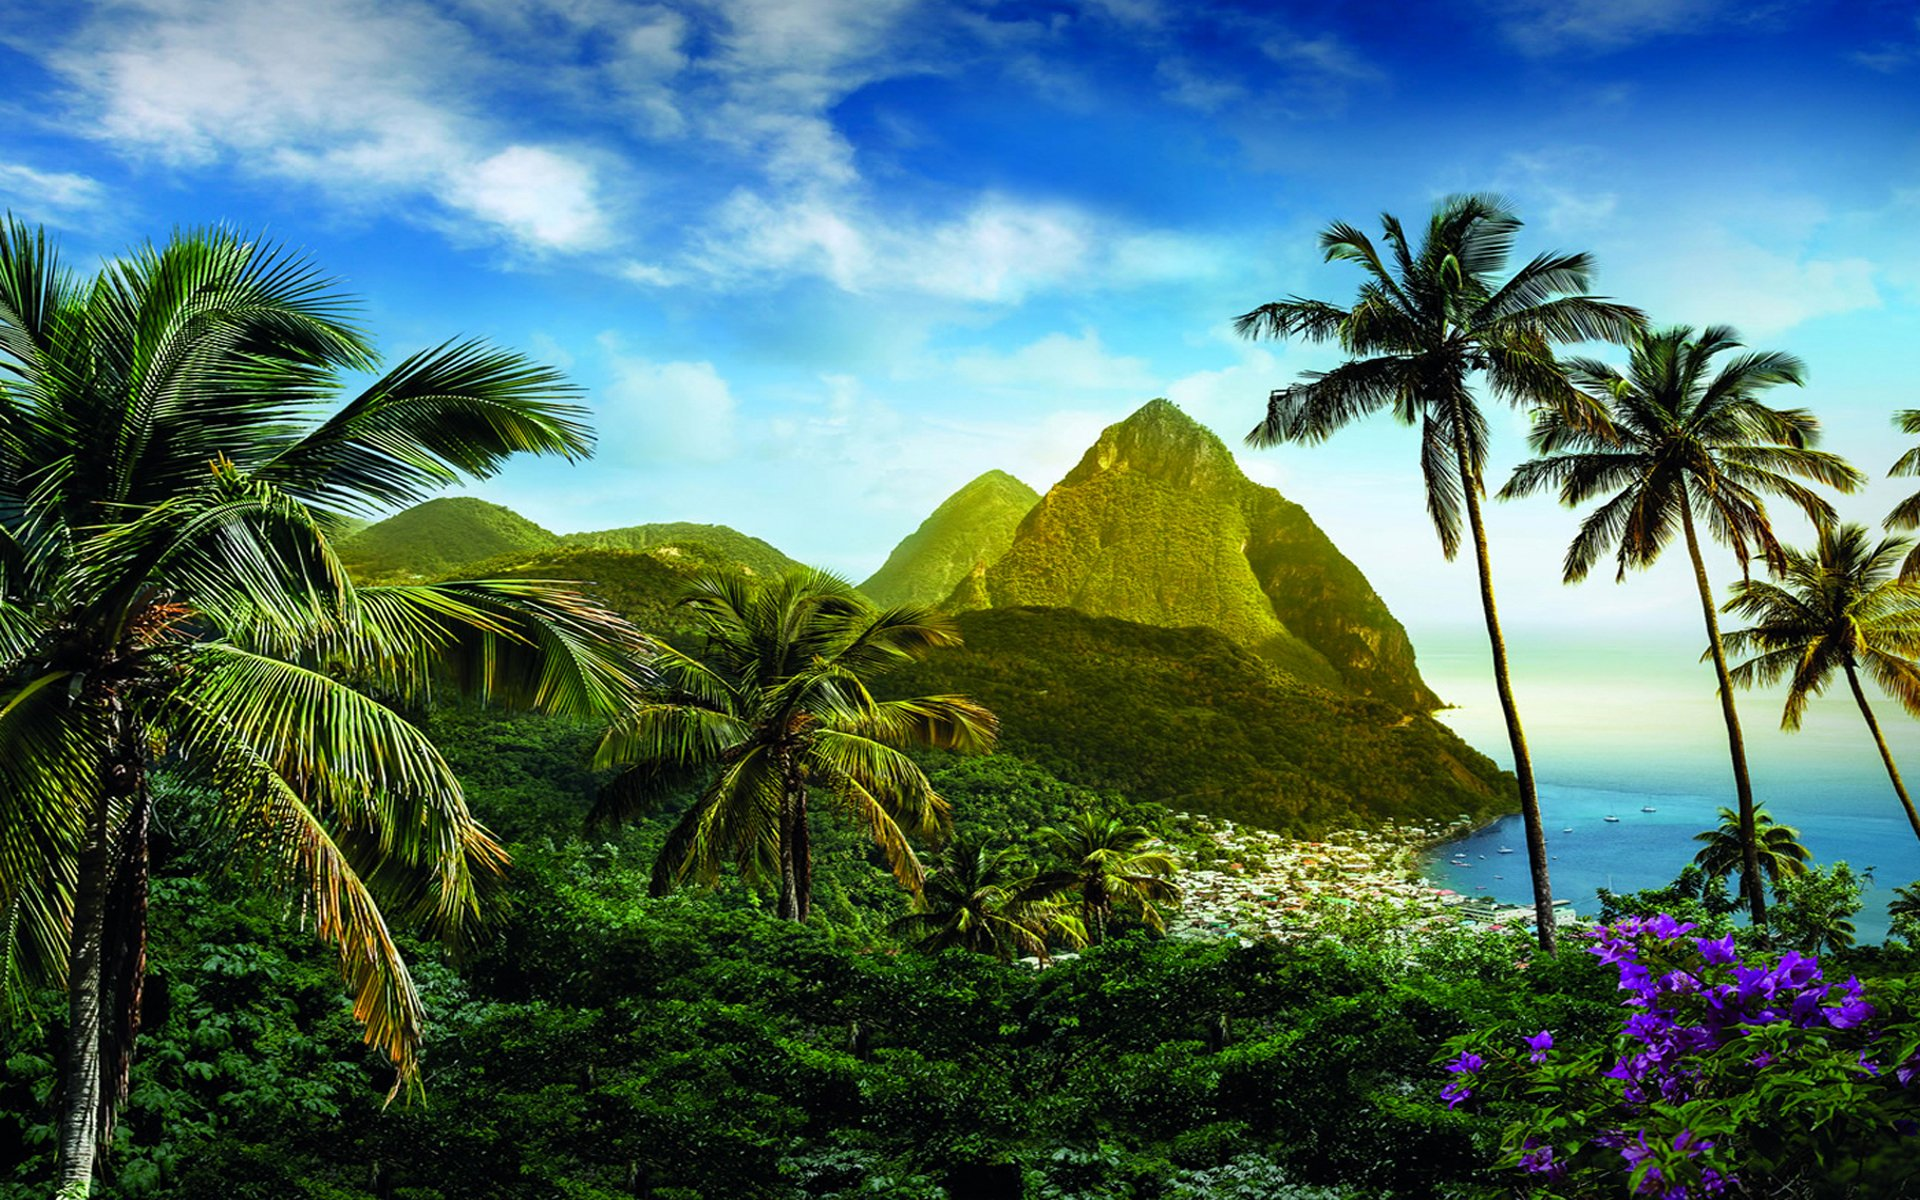 st lucia in the caribbean hd wallpaper | background image